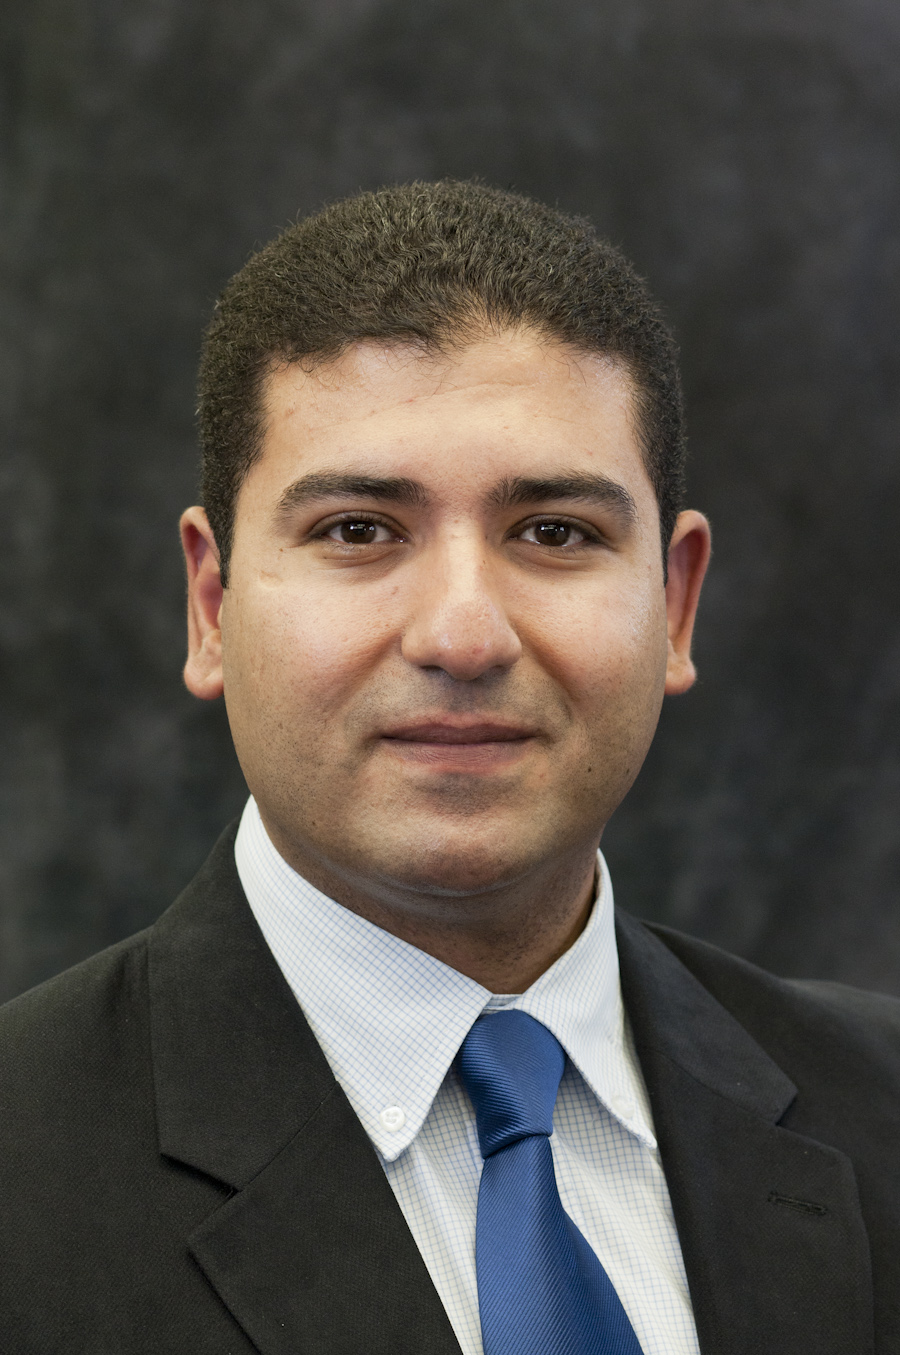 Ahmed Radwan, Assistant Professor of Physical Therapy